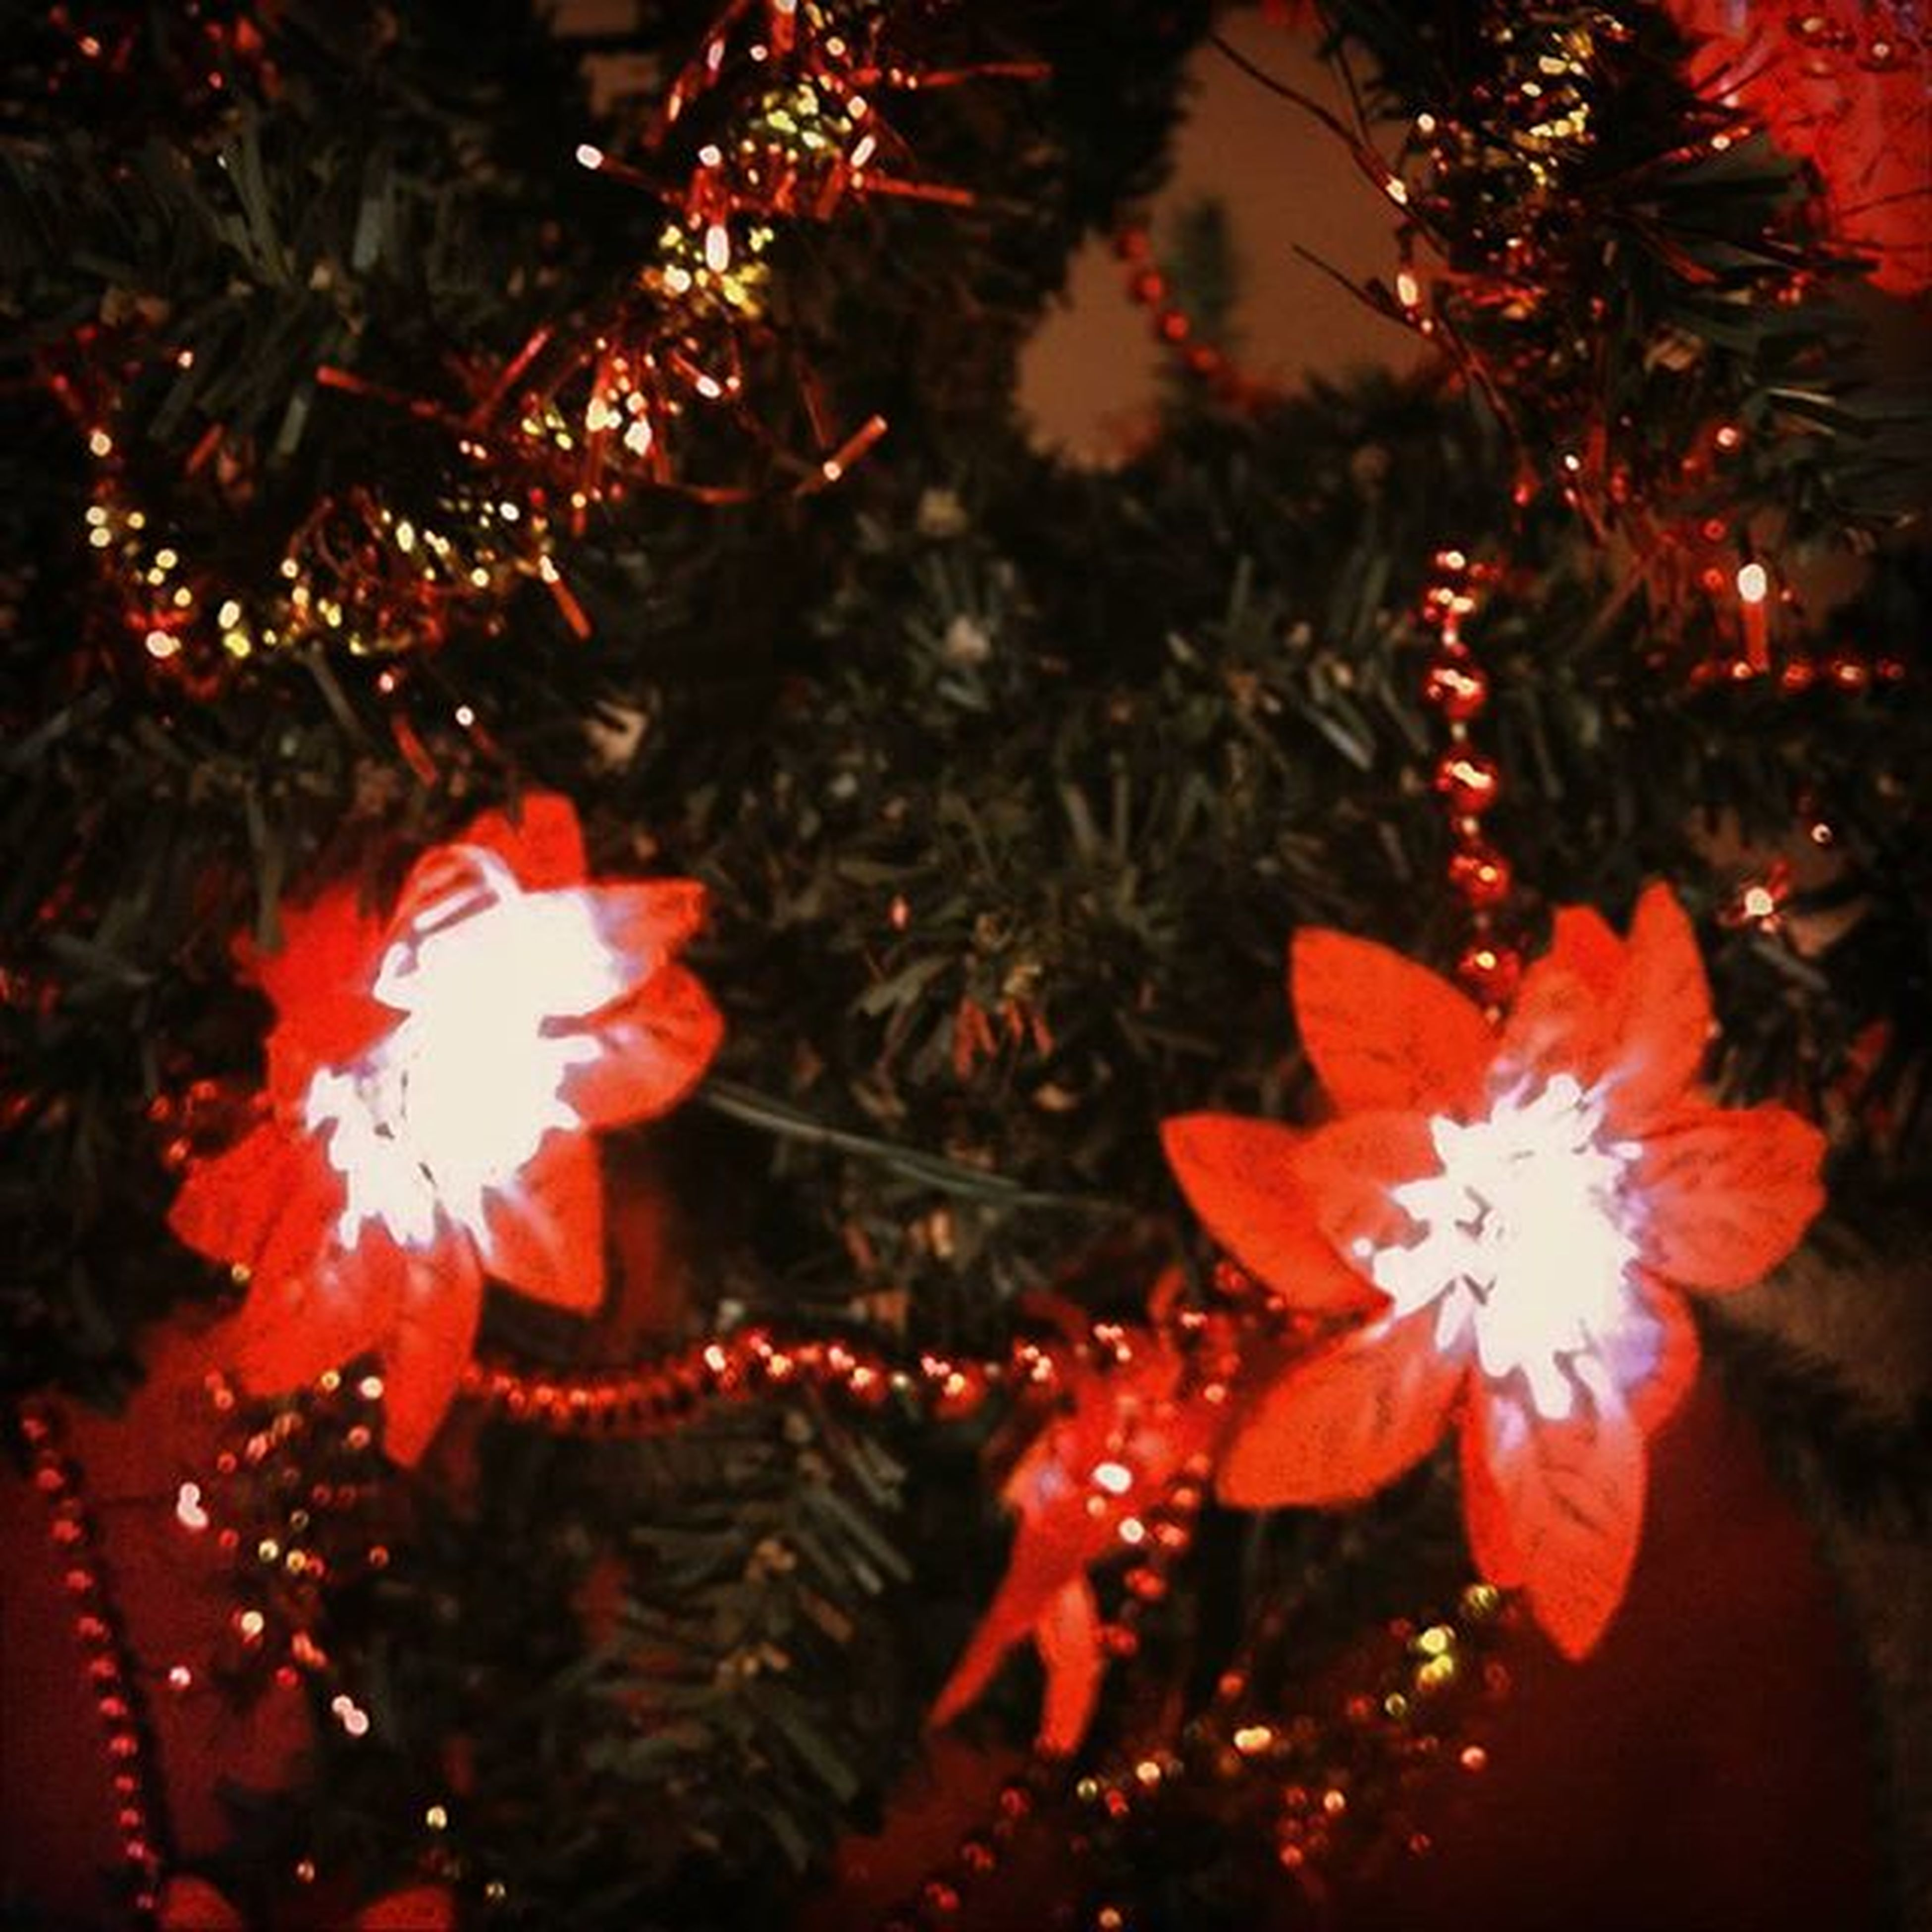 illuminated, night, red, celebration, flower, growth, decoration, glowing, tradition, close-up, tree, nature, outdoors, no people, christmas tree, christmas, petal, christmas decoration, beauty in nature, focus on foreground